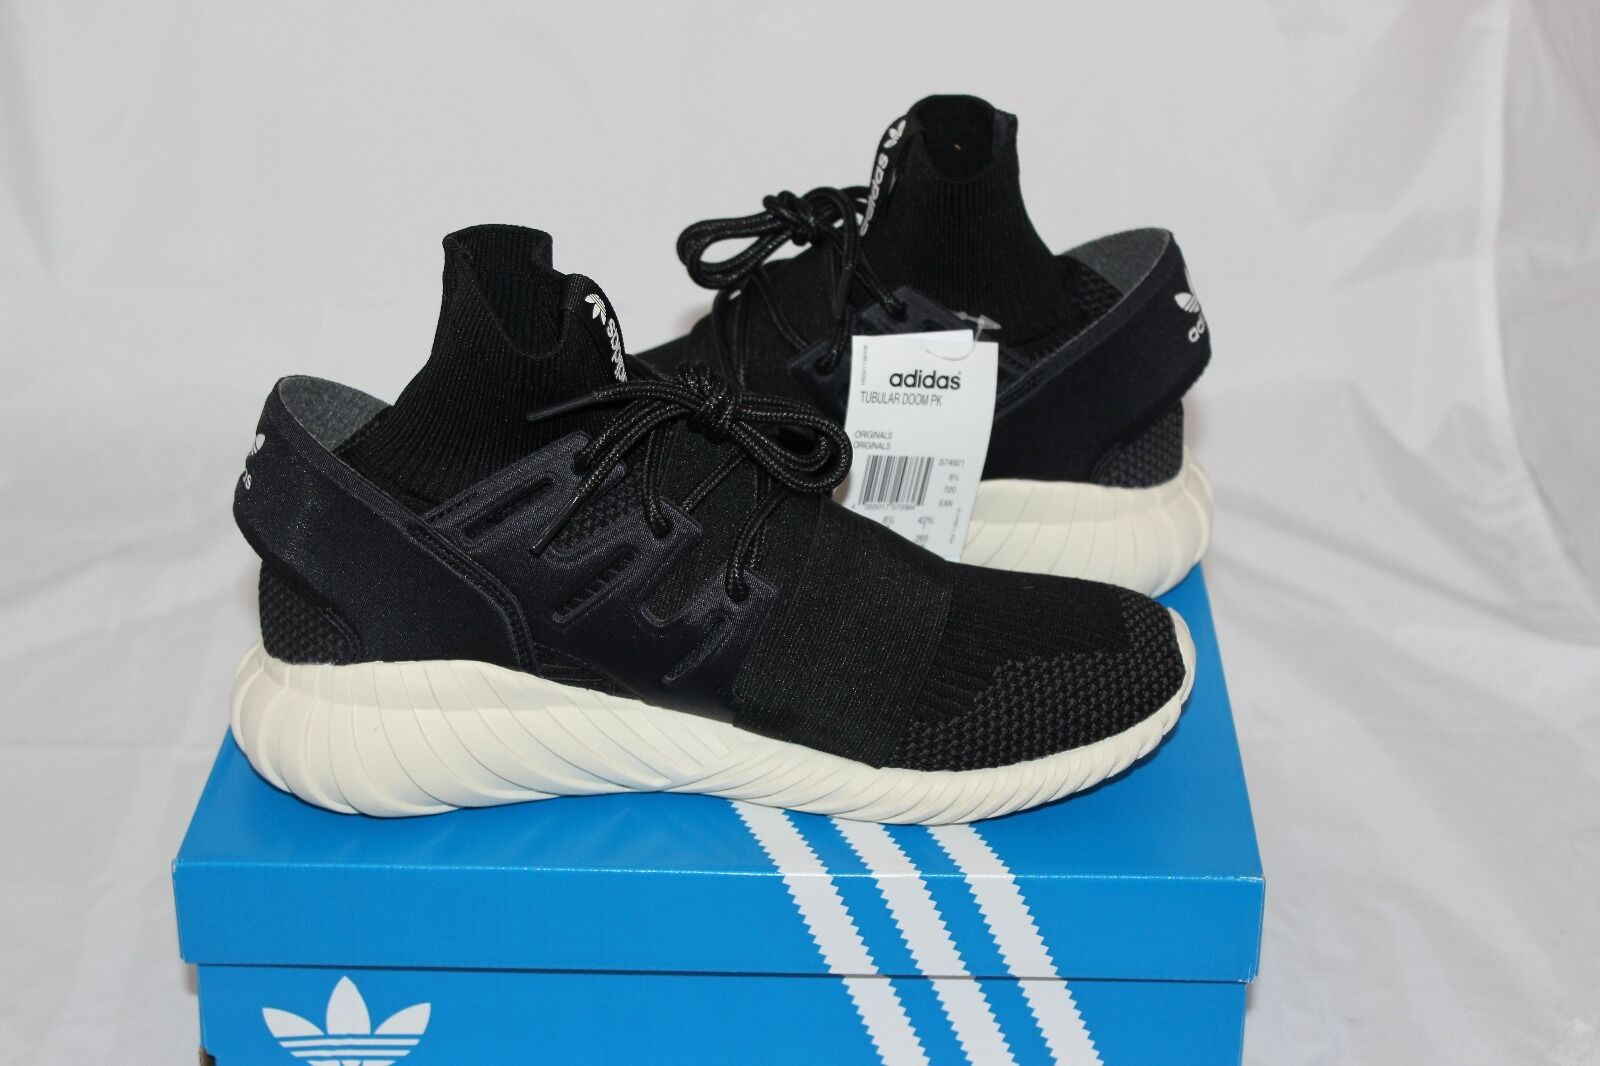 adidas homme Stabil X Indoor Court chaussures blanc Sports Handball Breathable